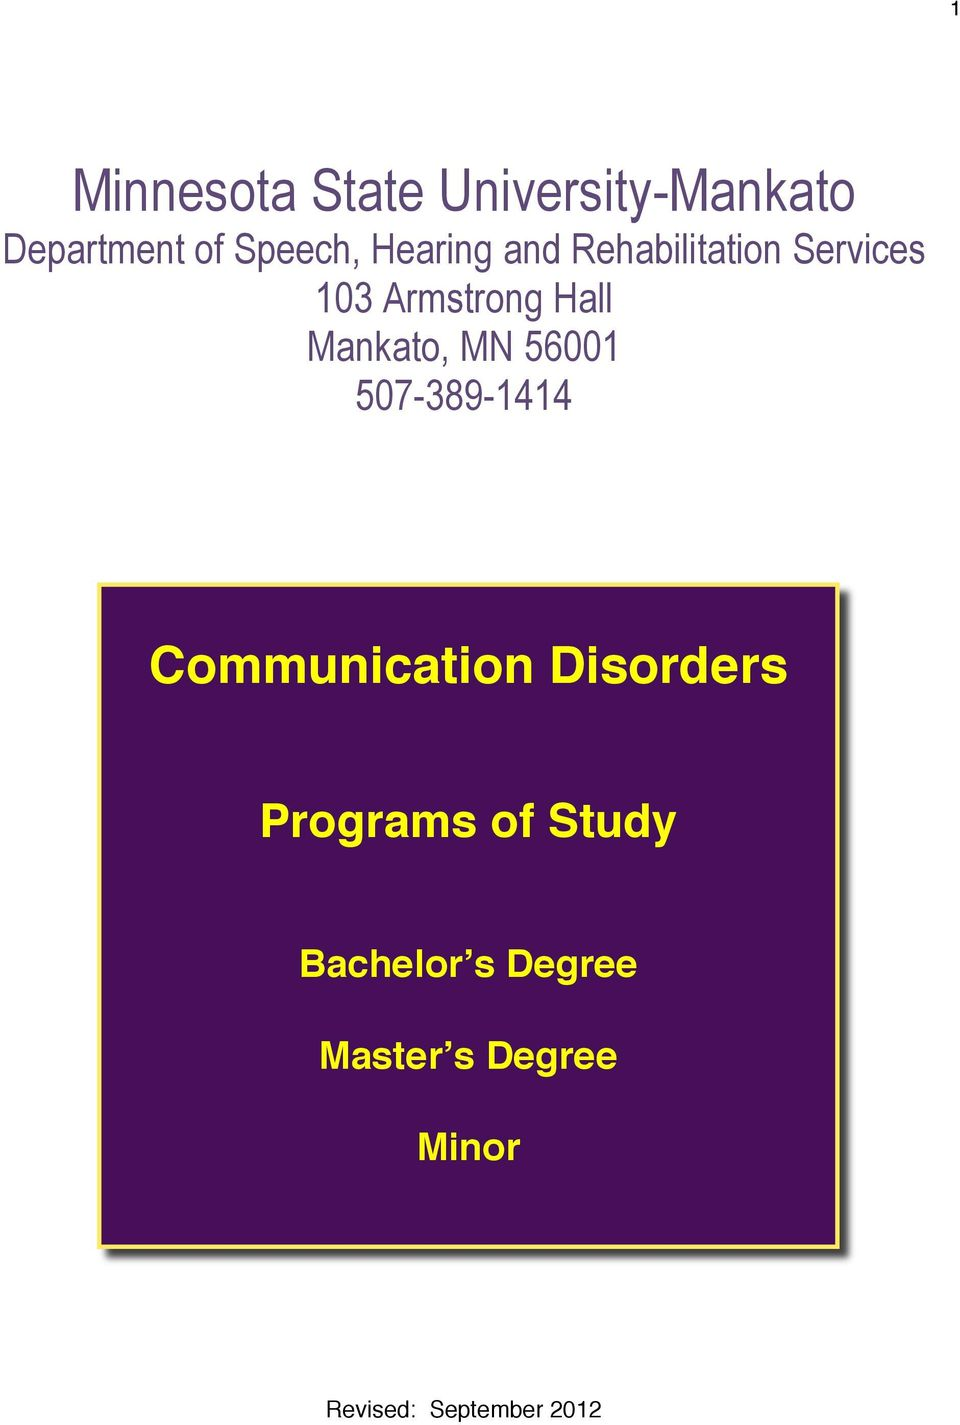 Mankato, MN 56001 507-389-1414 Communication Disorders